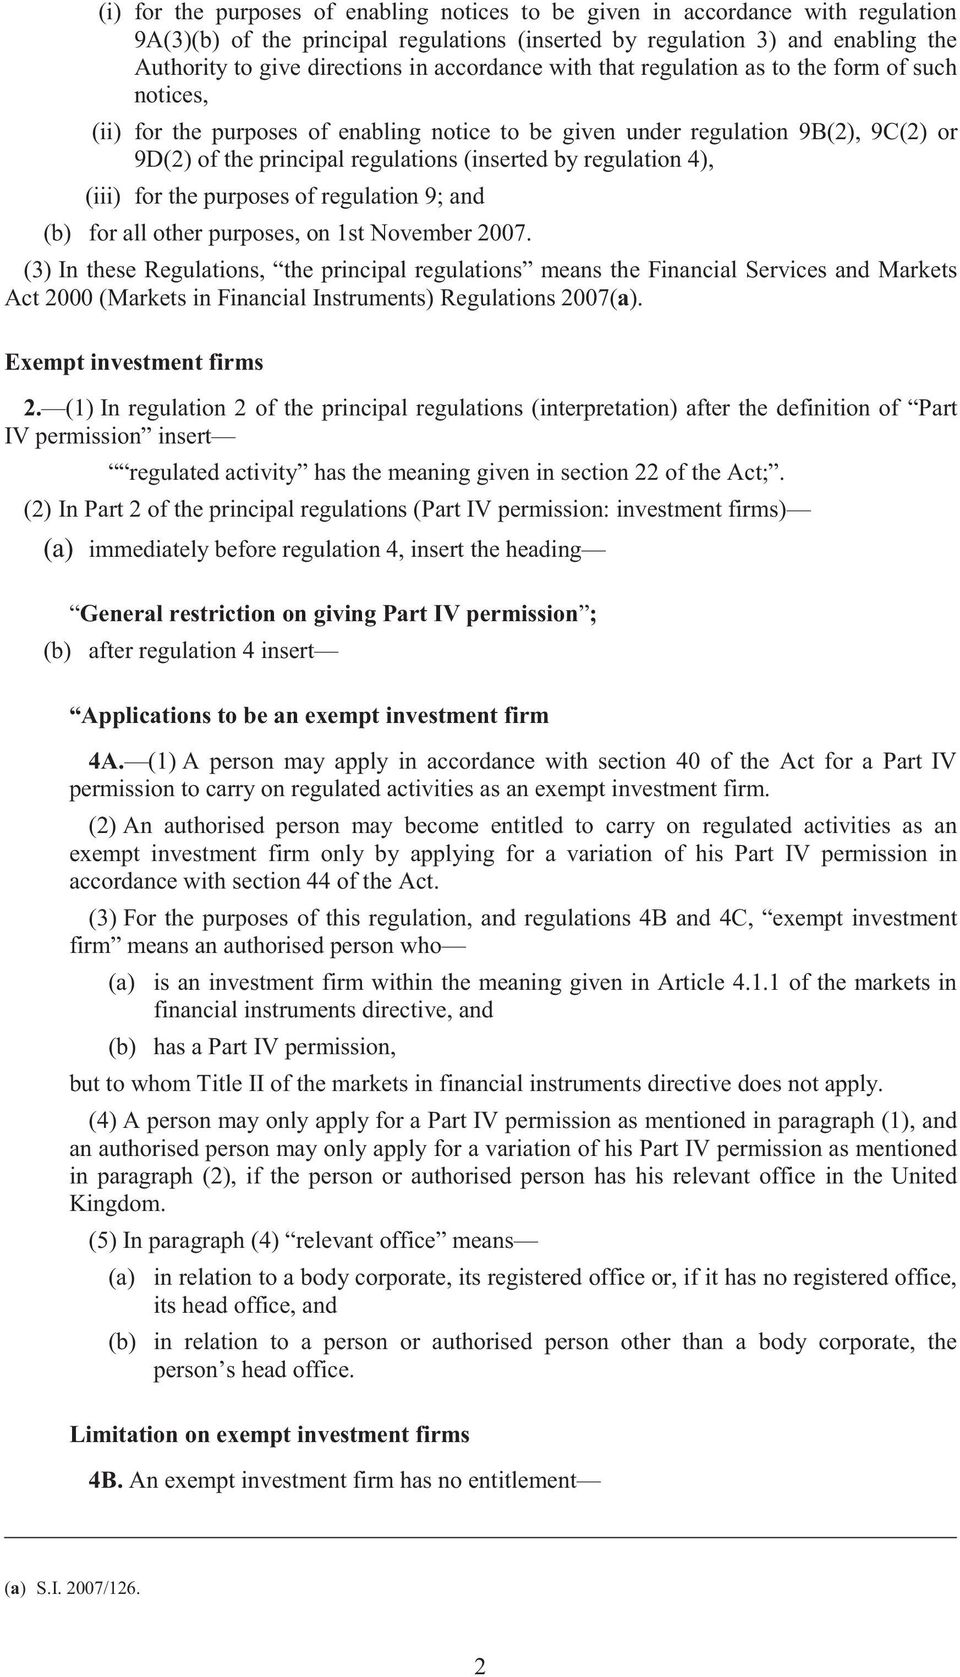 regulation 4), (iii) for the purposes of regulation 9; and (b) for all other purposes, on 1st November 2007.